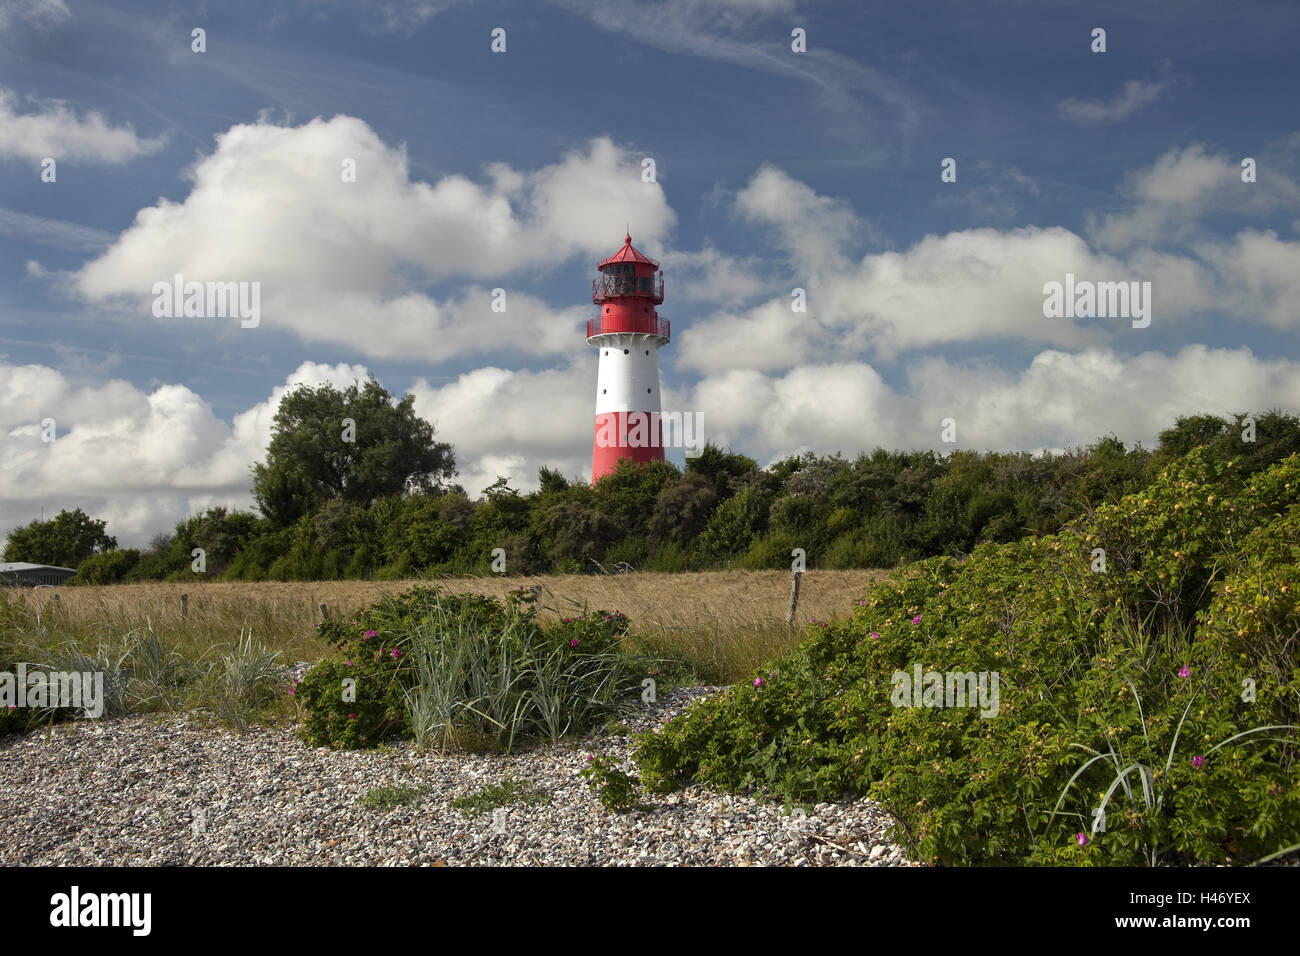 Germany, Schleswig - Holstein, region Angeln, lighthouse Falshöft, Stock Photo